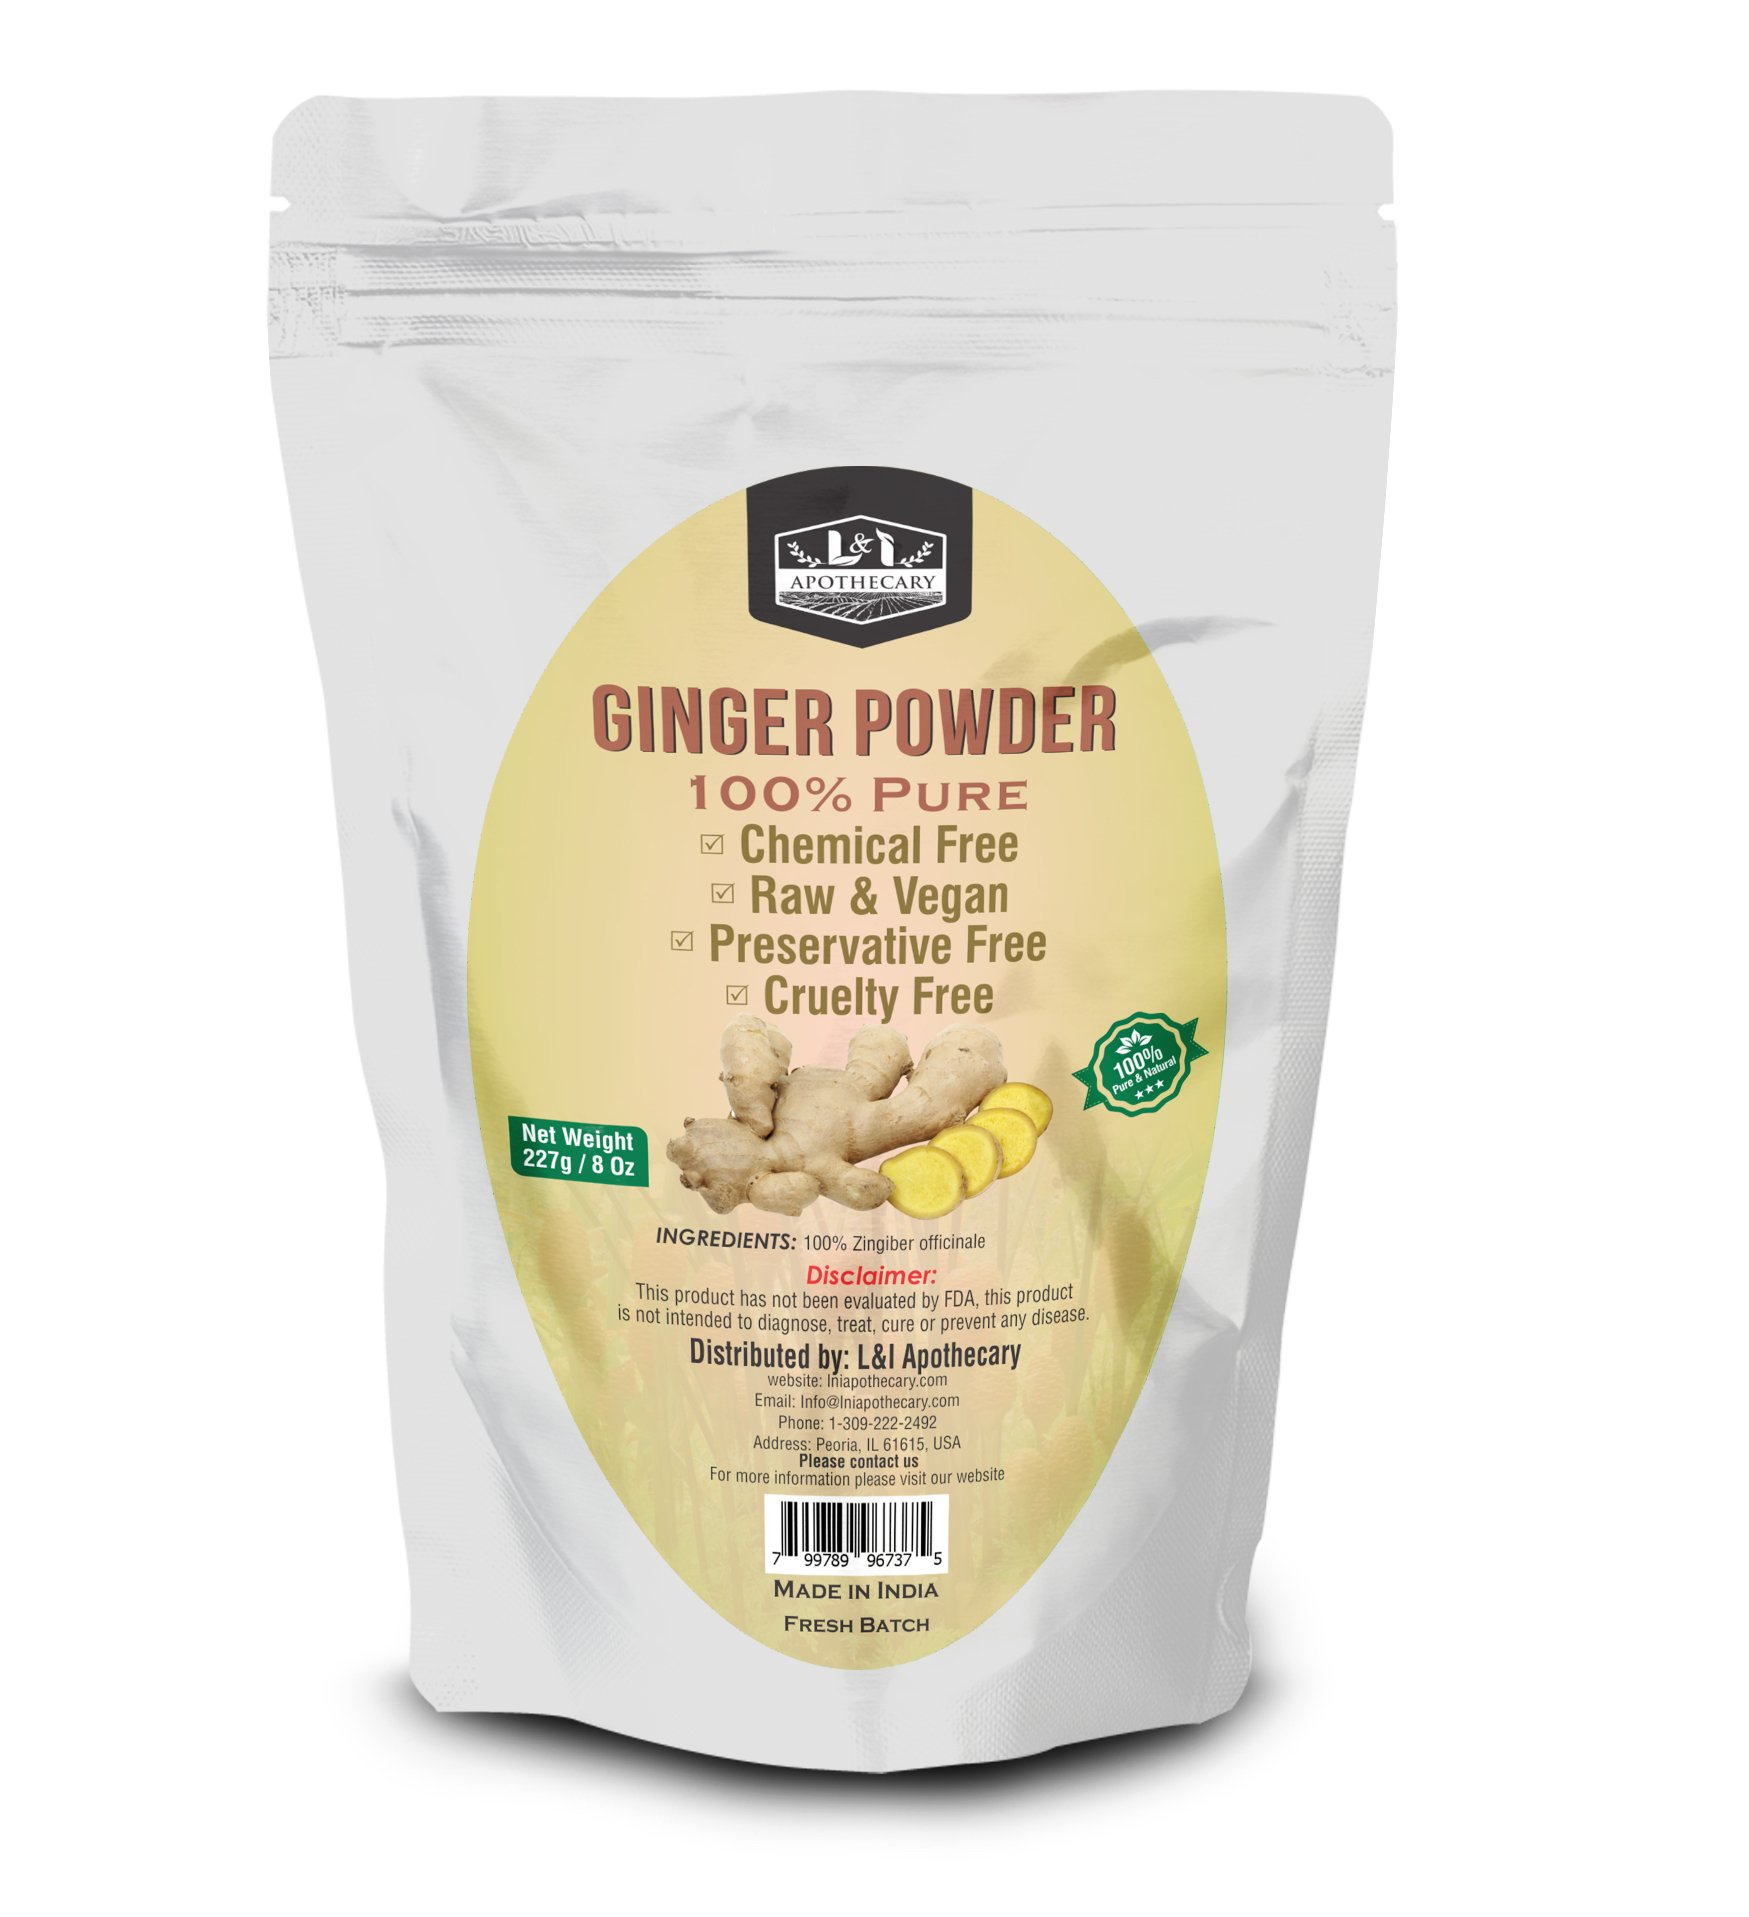 L&I Apothecary 227 Grams / 8 Oz Ginger/Zingiber officinale Powder, 100% Pure & natural. Food Grade Herb for supplements, hair care & skin care